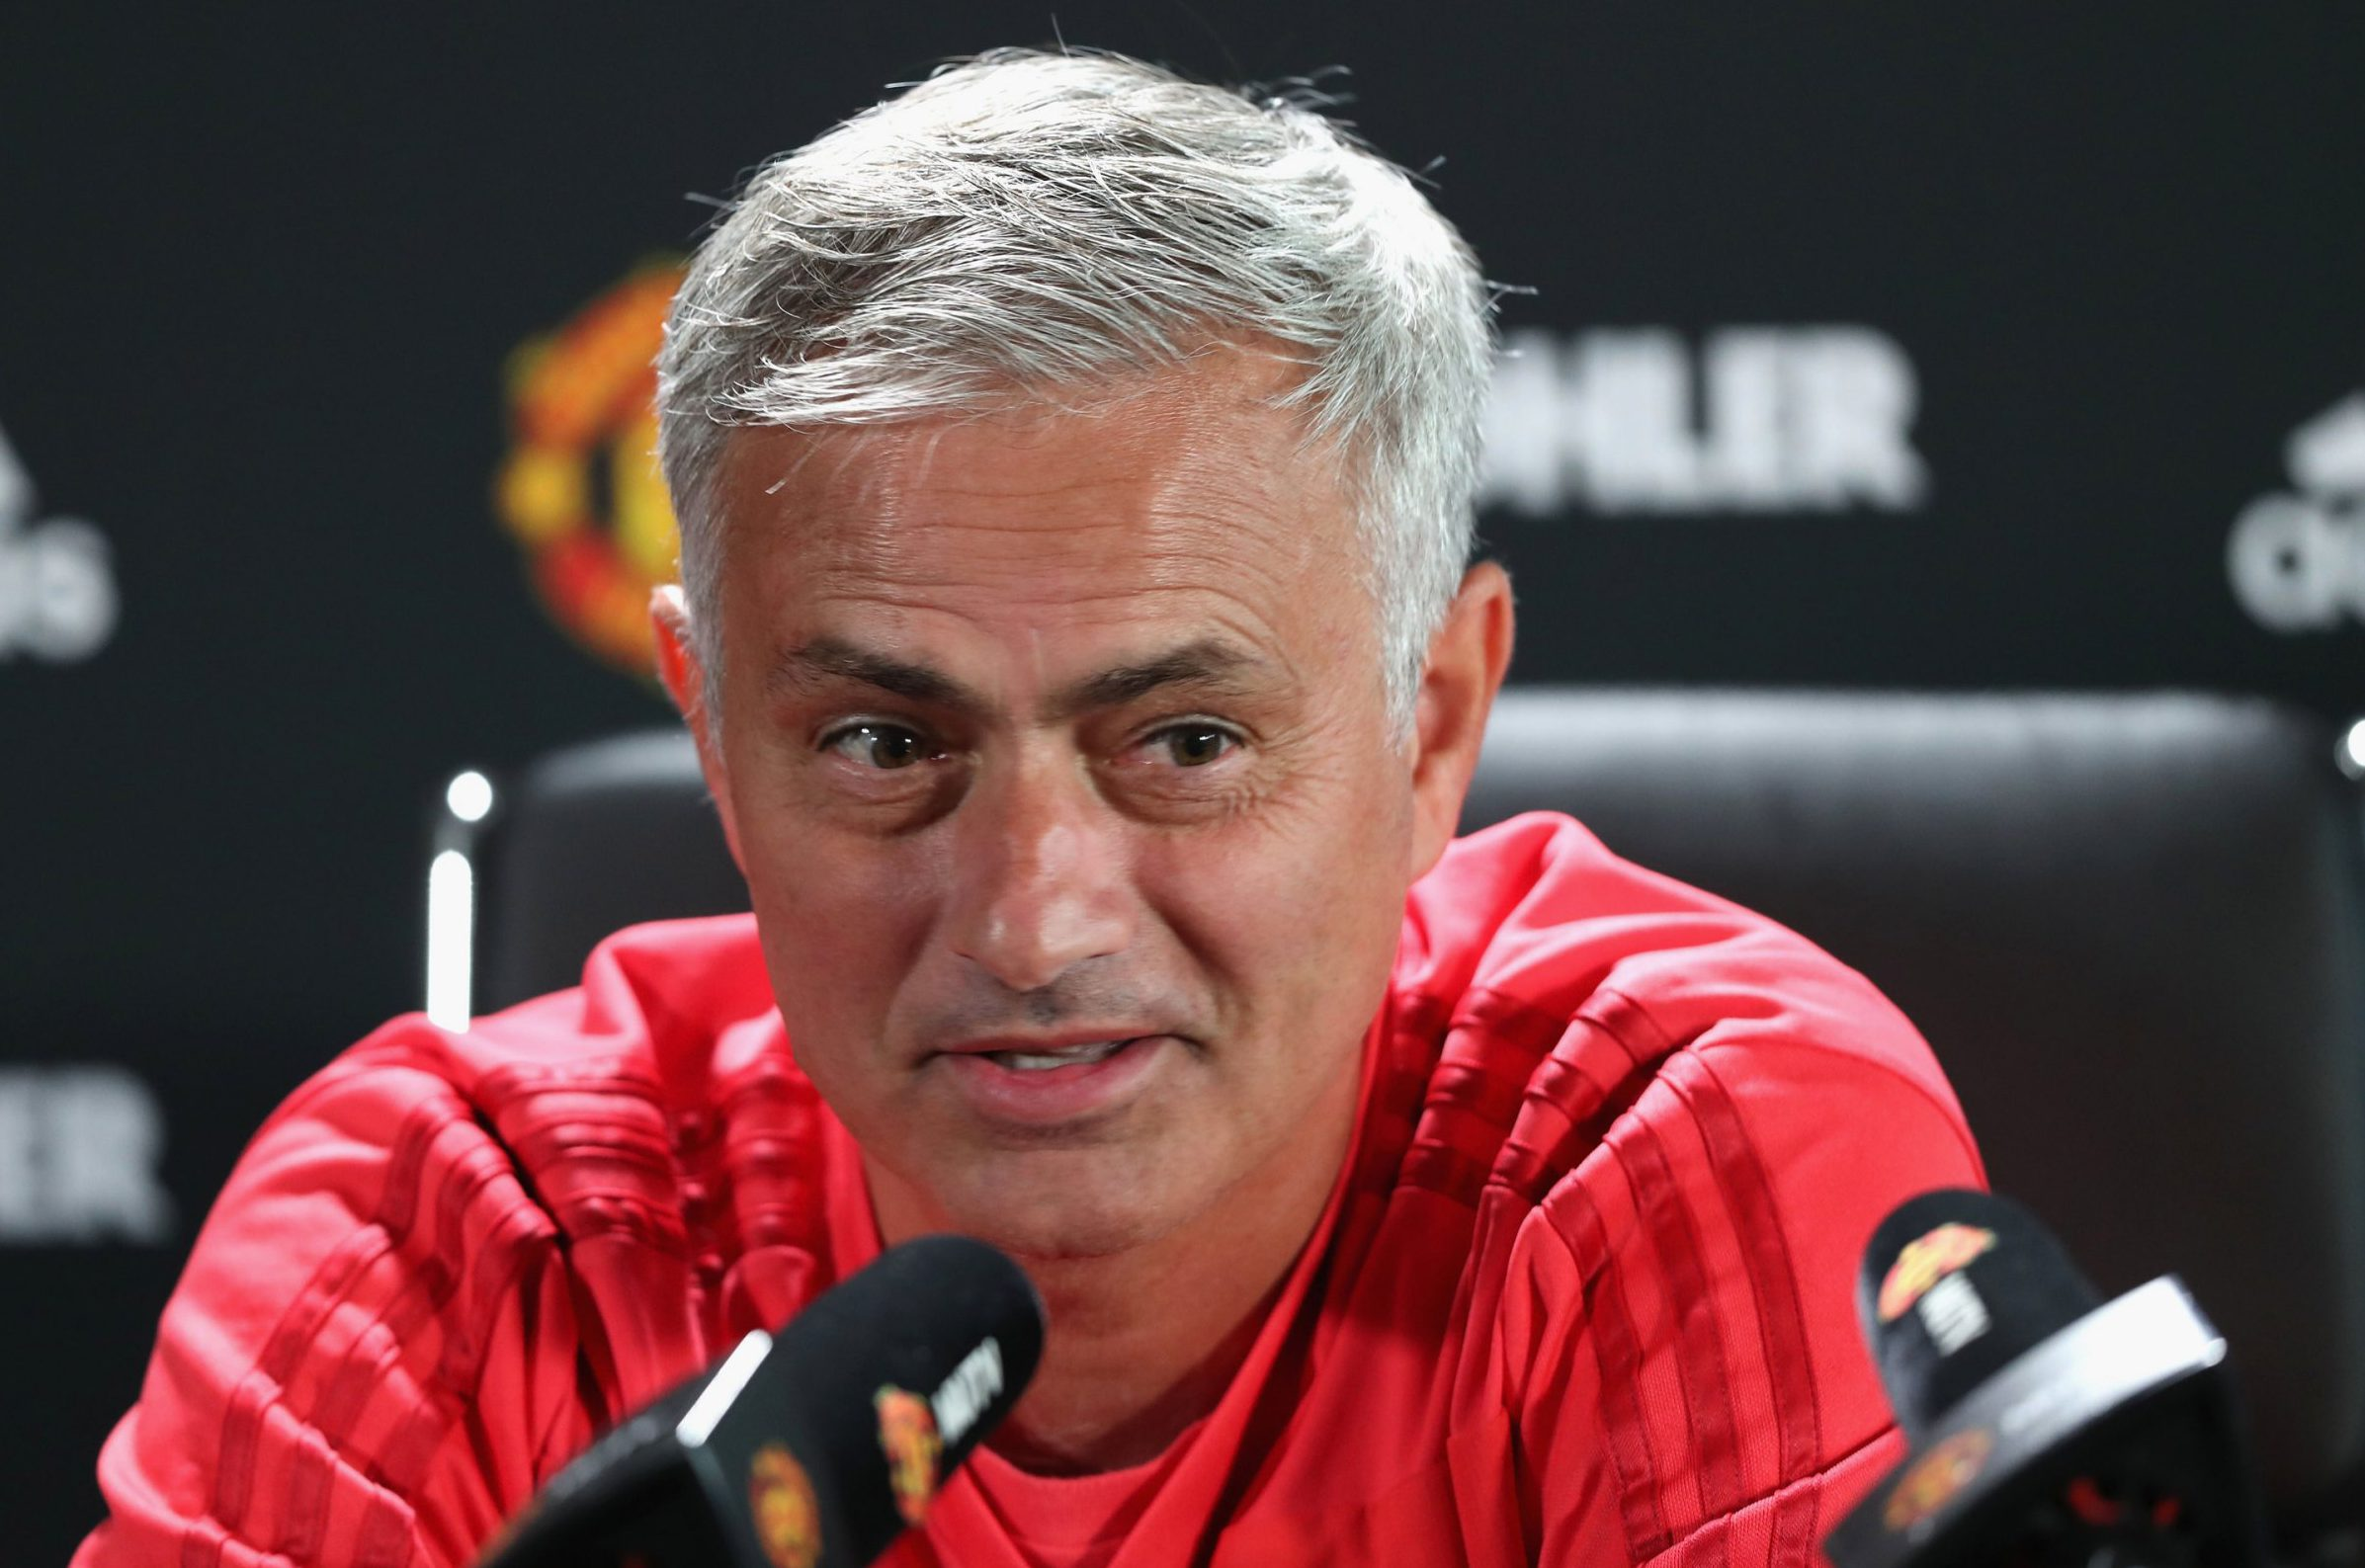 MANCHESTER, ENGLAND - AUGUST 31: (EXCLUSIVE COVERAGE) Manager Jose Mourinho of Manchester United speaks during a press conference at Aon Training Complex on August 31, 2018 in Manchester, England. (Photo by John Peters/Man Utd via Getty Images)